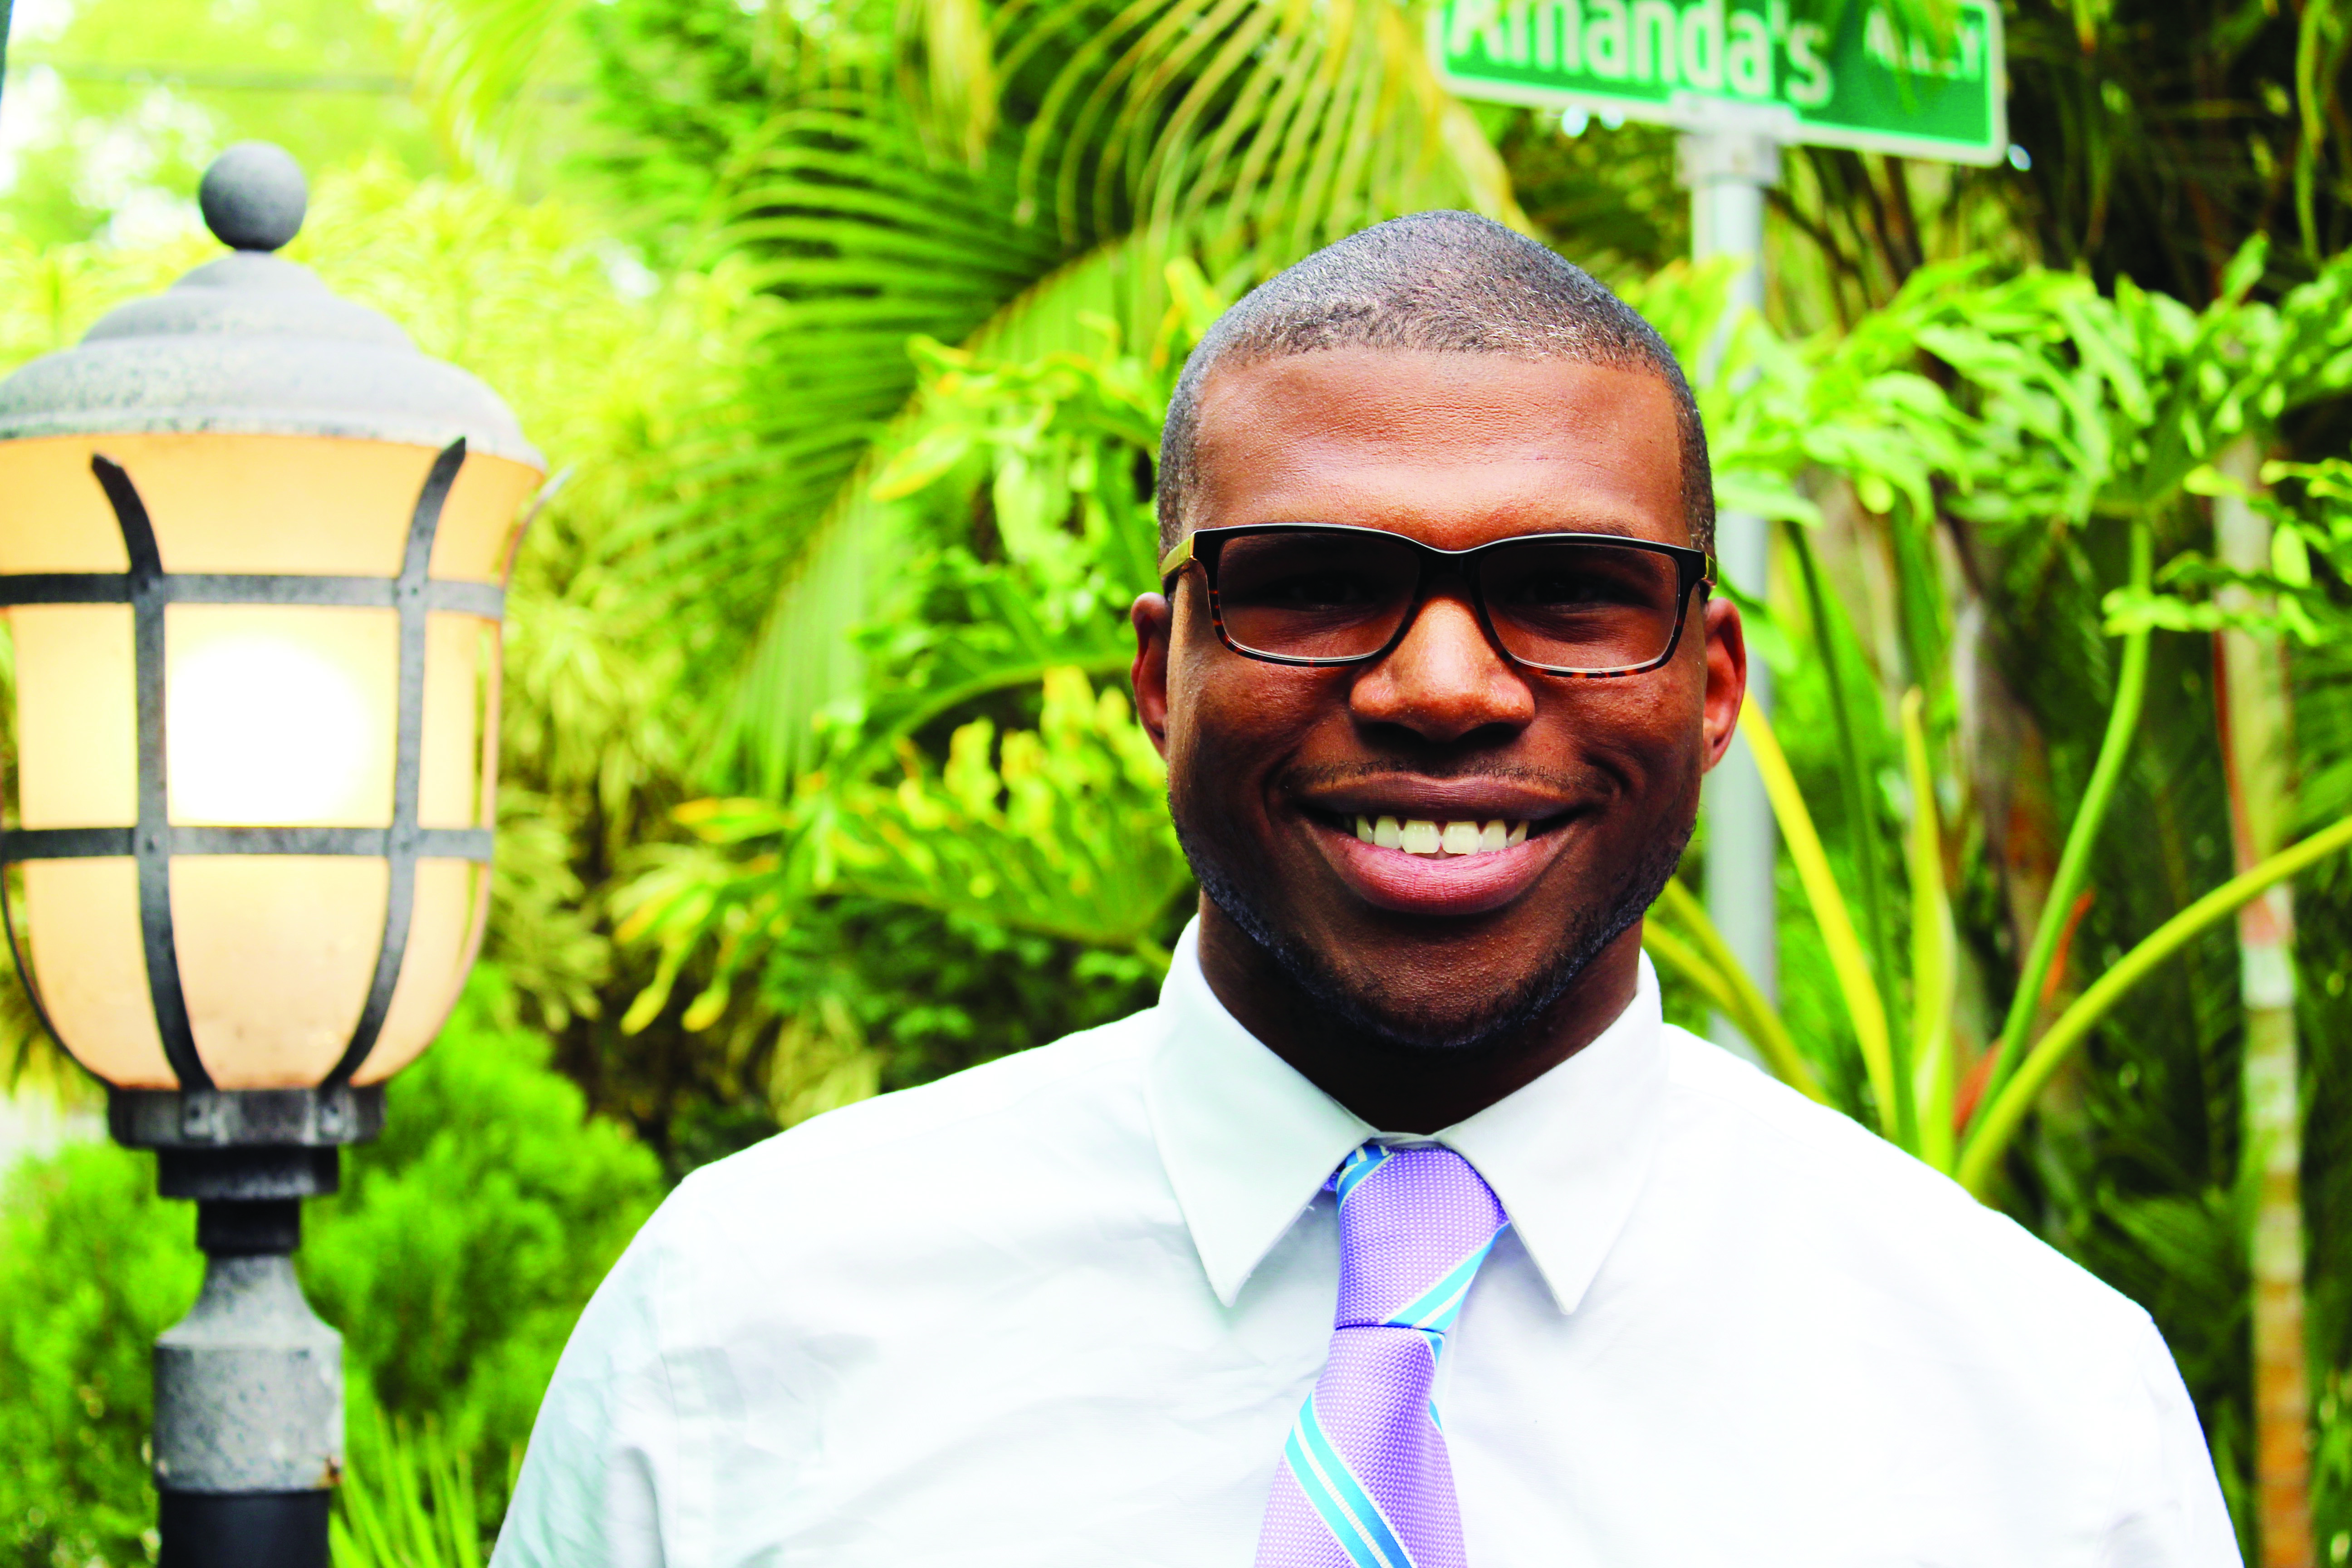 Second Effort: Corey Givens Jr. unsuccessfully ran for a position on the Pinellas County School Board in 2012. He graduated from USF St. Petersburg in 2014 with a bachelor's degree in mass communications. Evy Guerra | The Crow's Nest